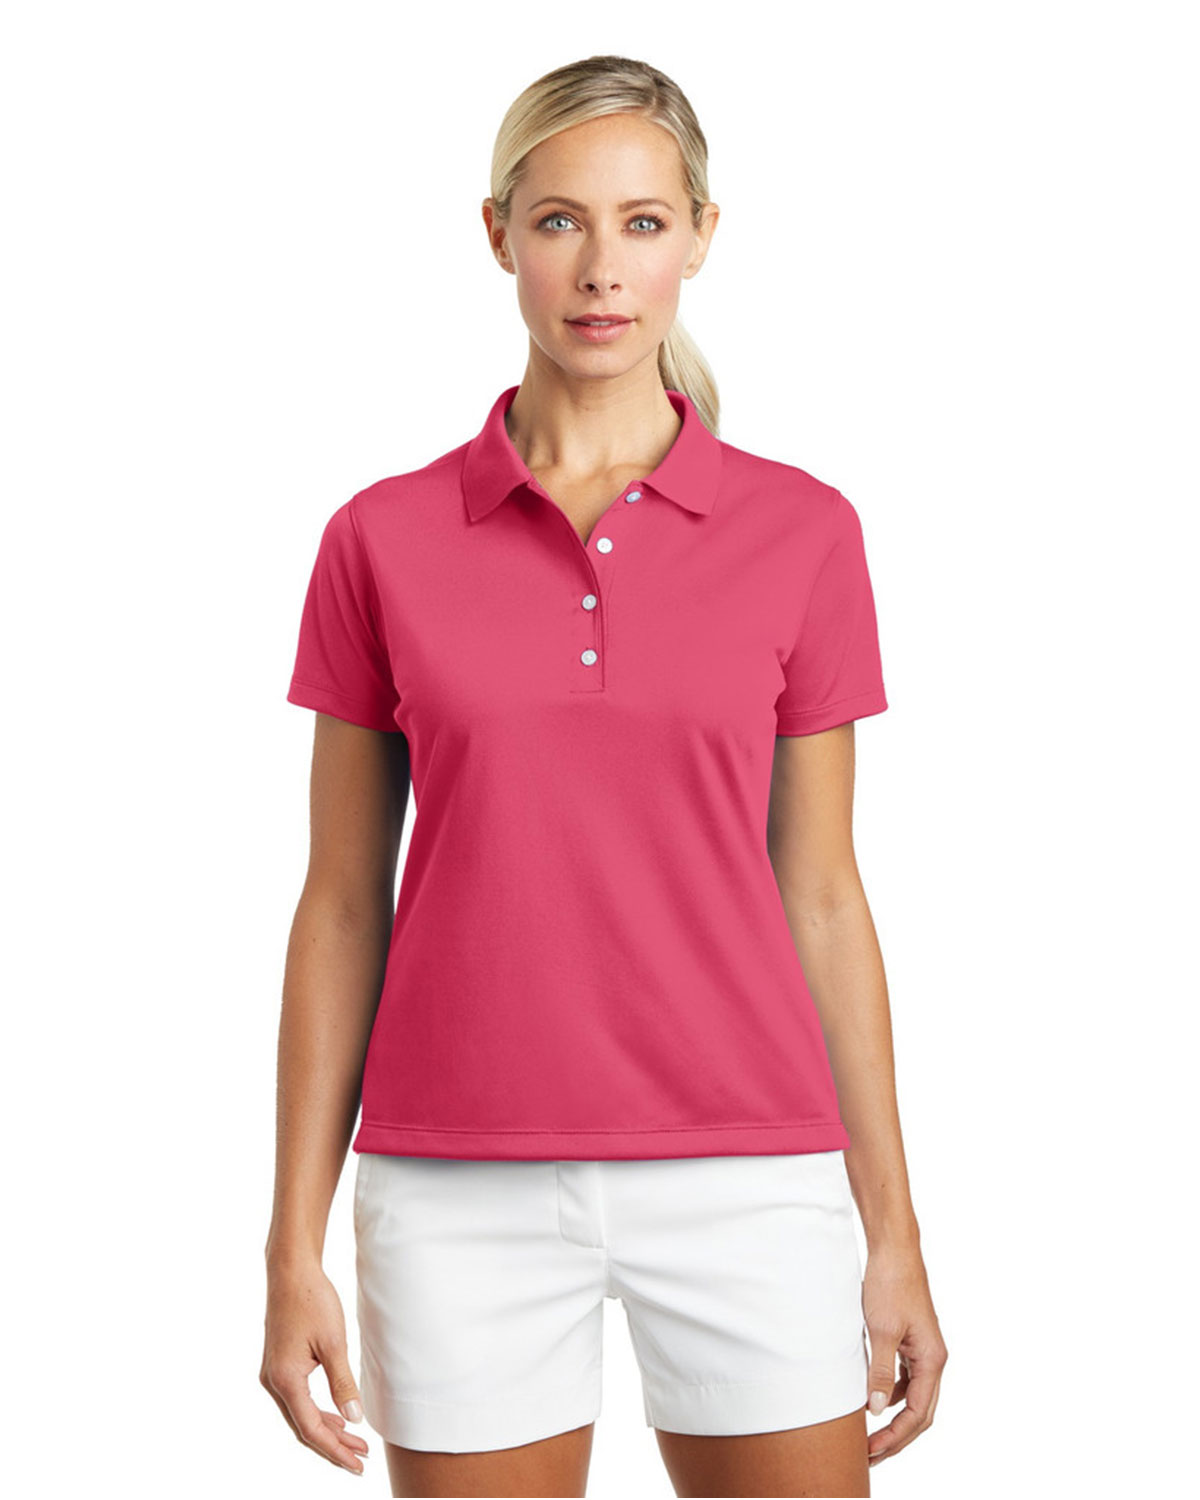 LADIES' TECH BASIC DRI-FIT POLOS